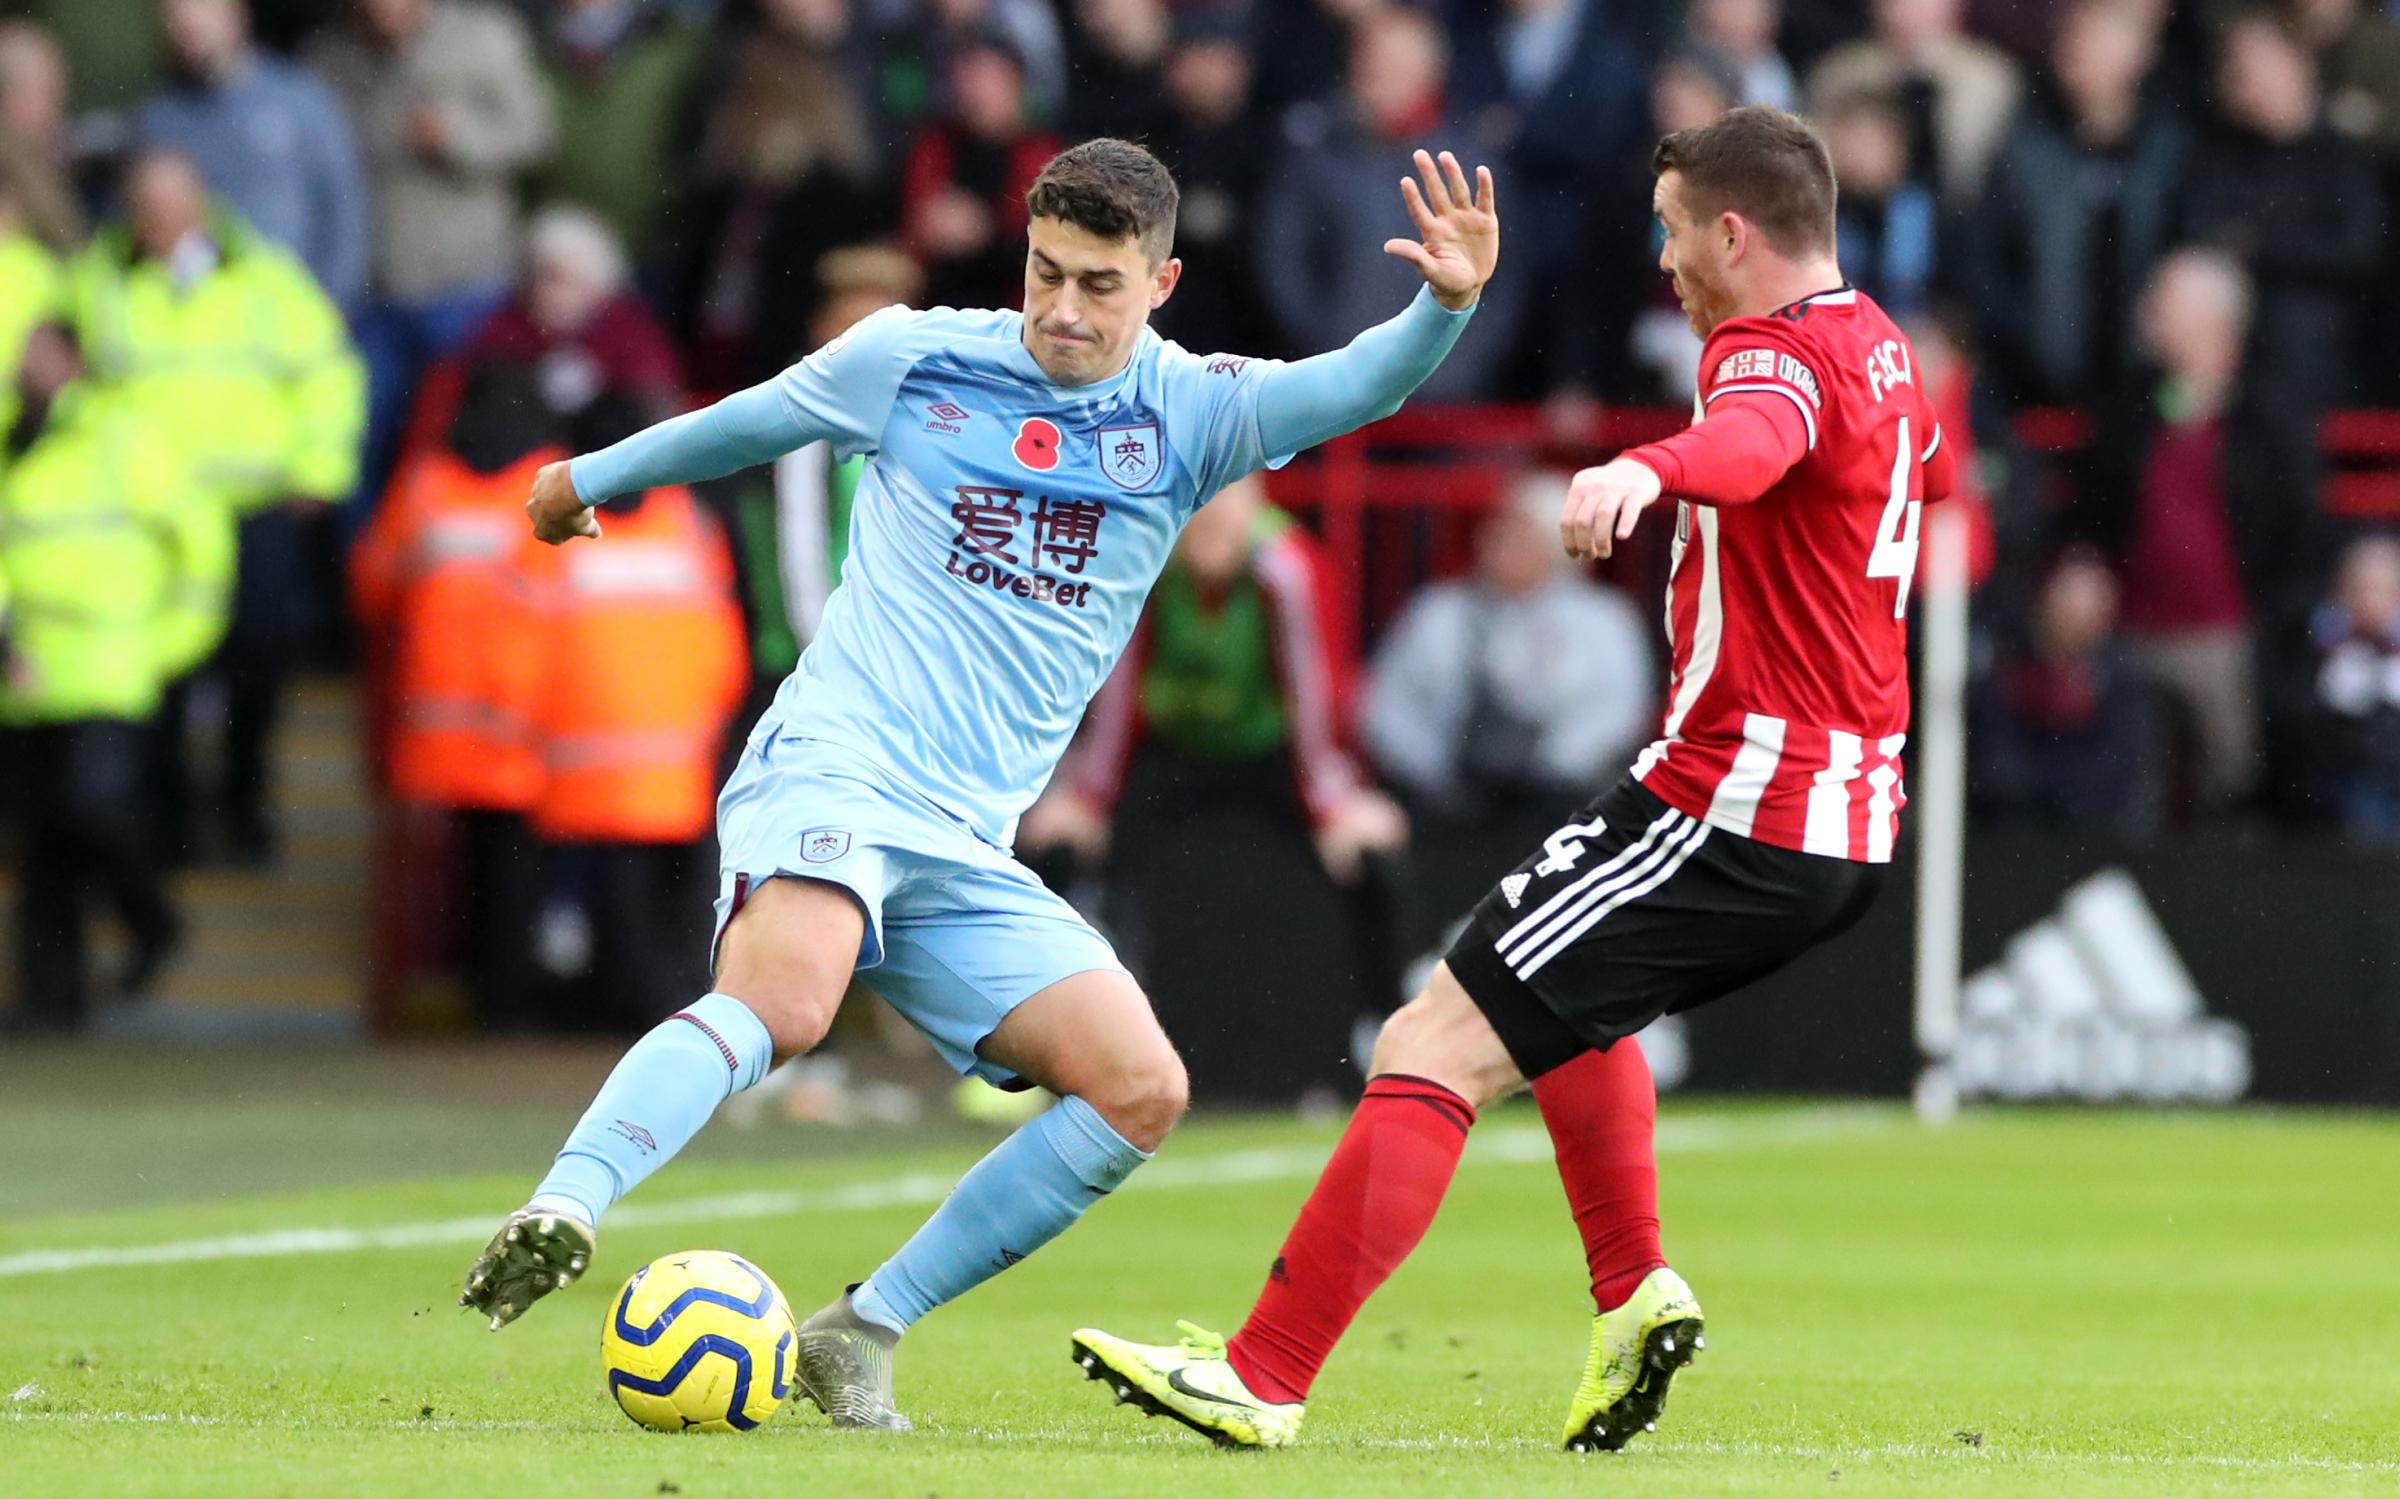 Sheffield United 3-0 Burnley: All the action as it happened